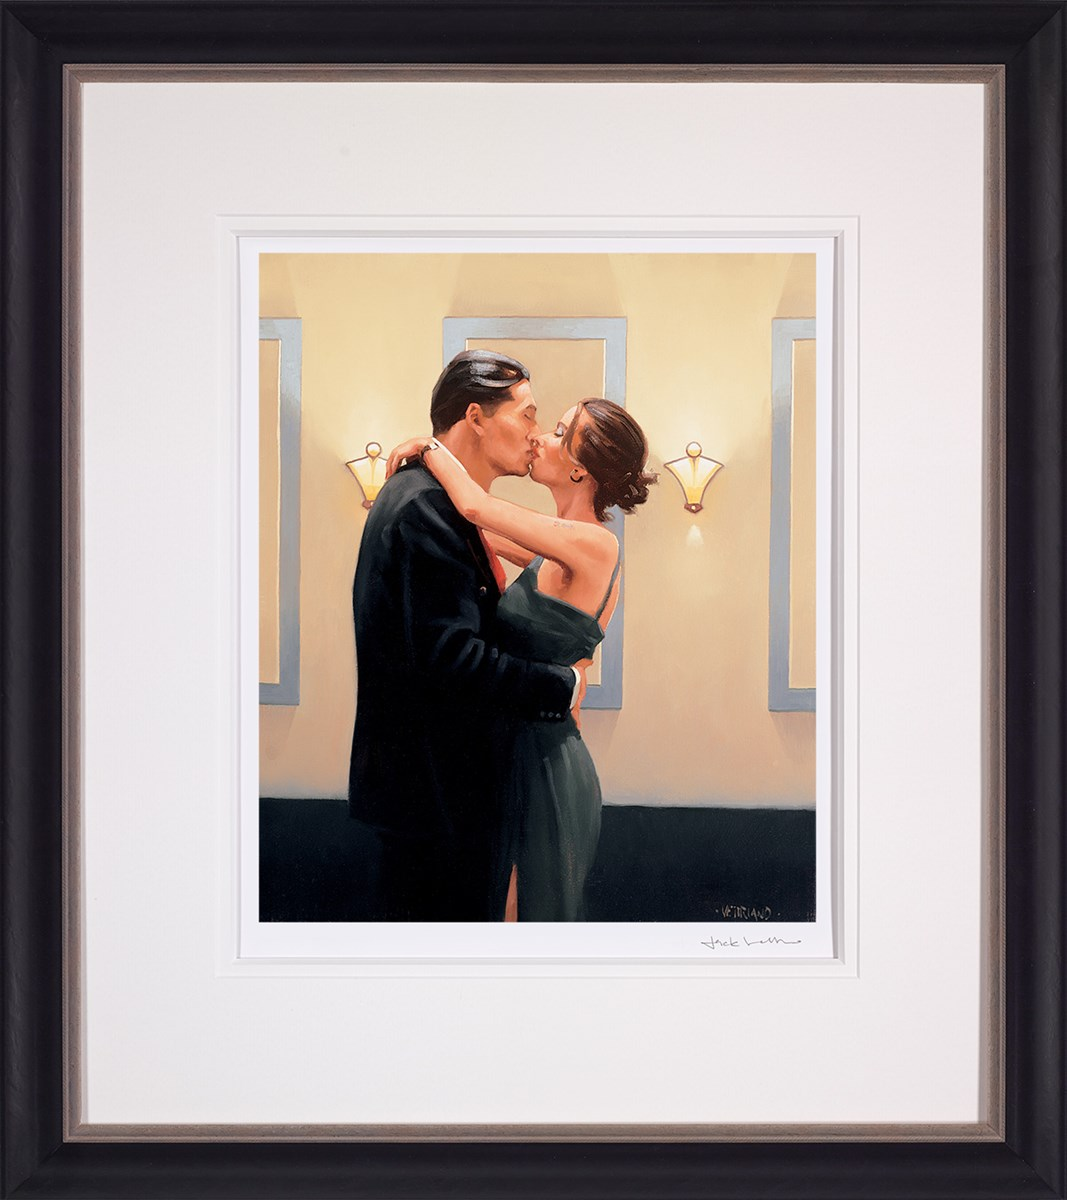 Betrayal - First Kiss by Jack Vettriano